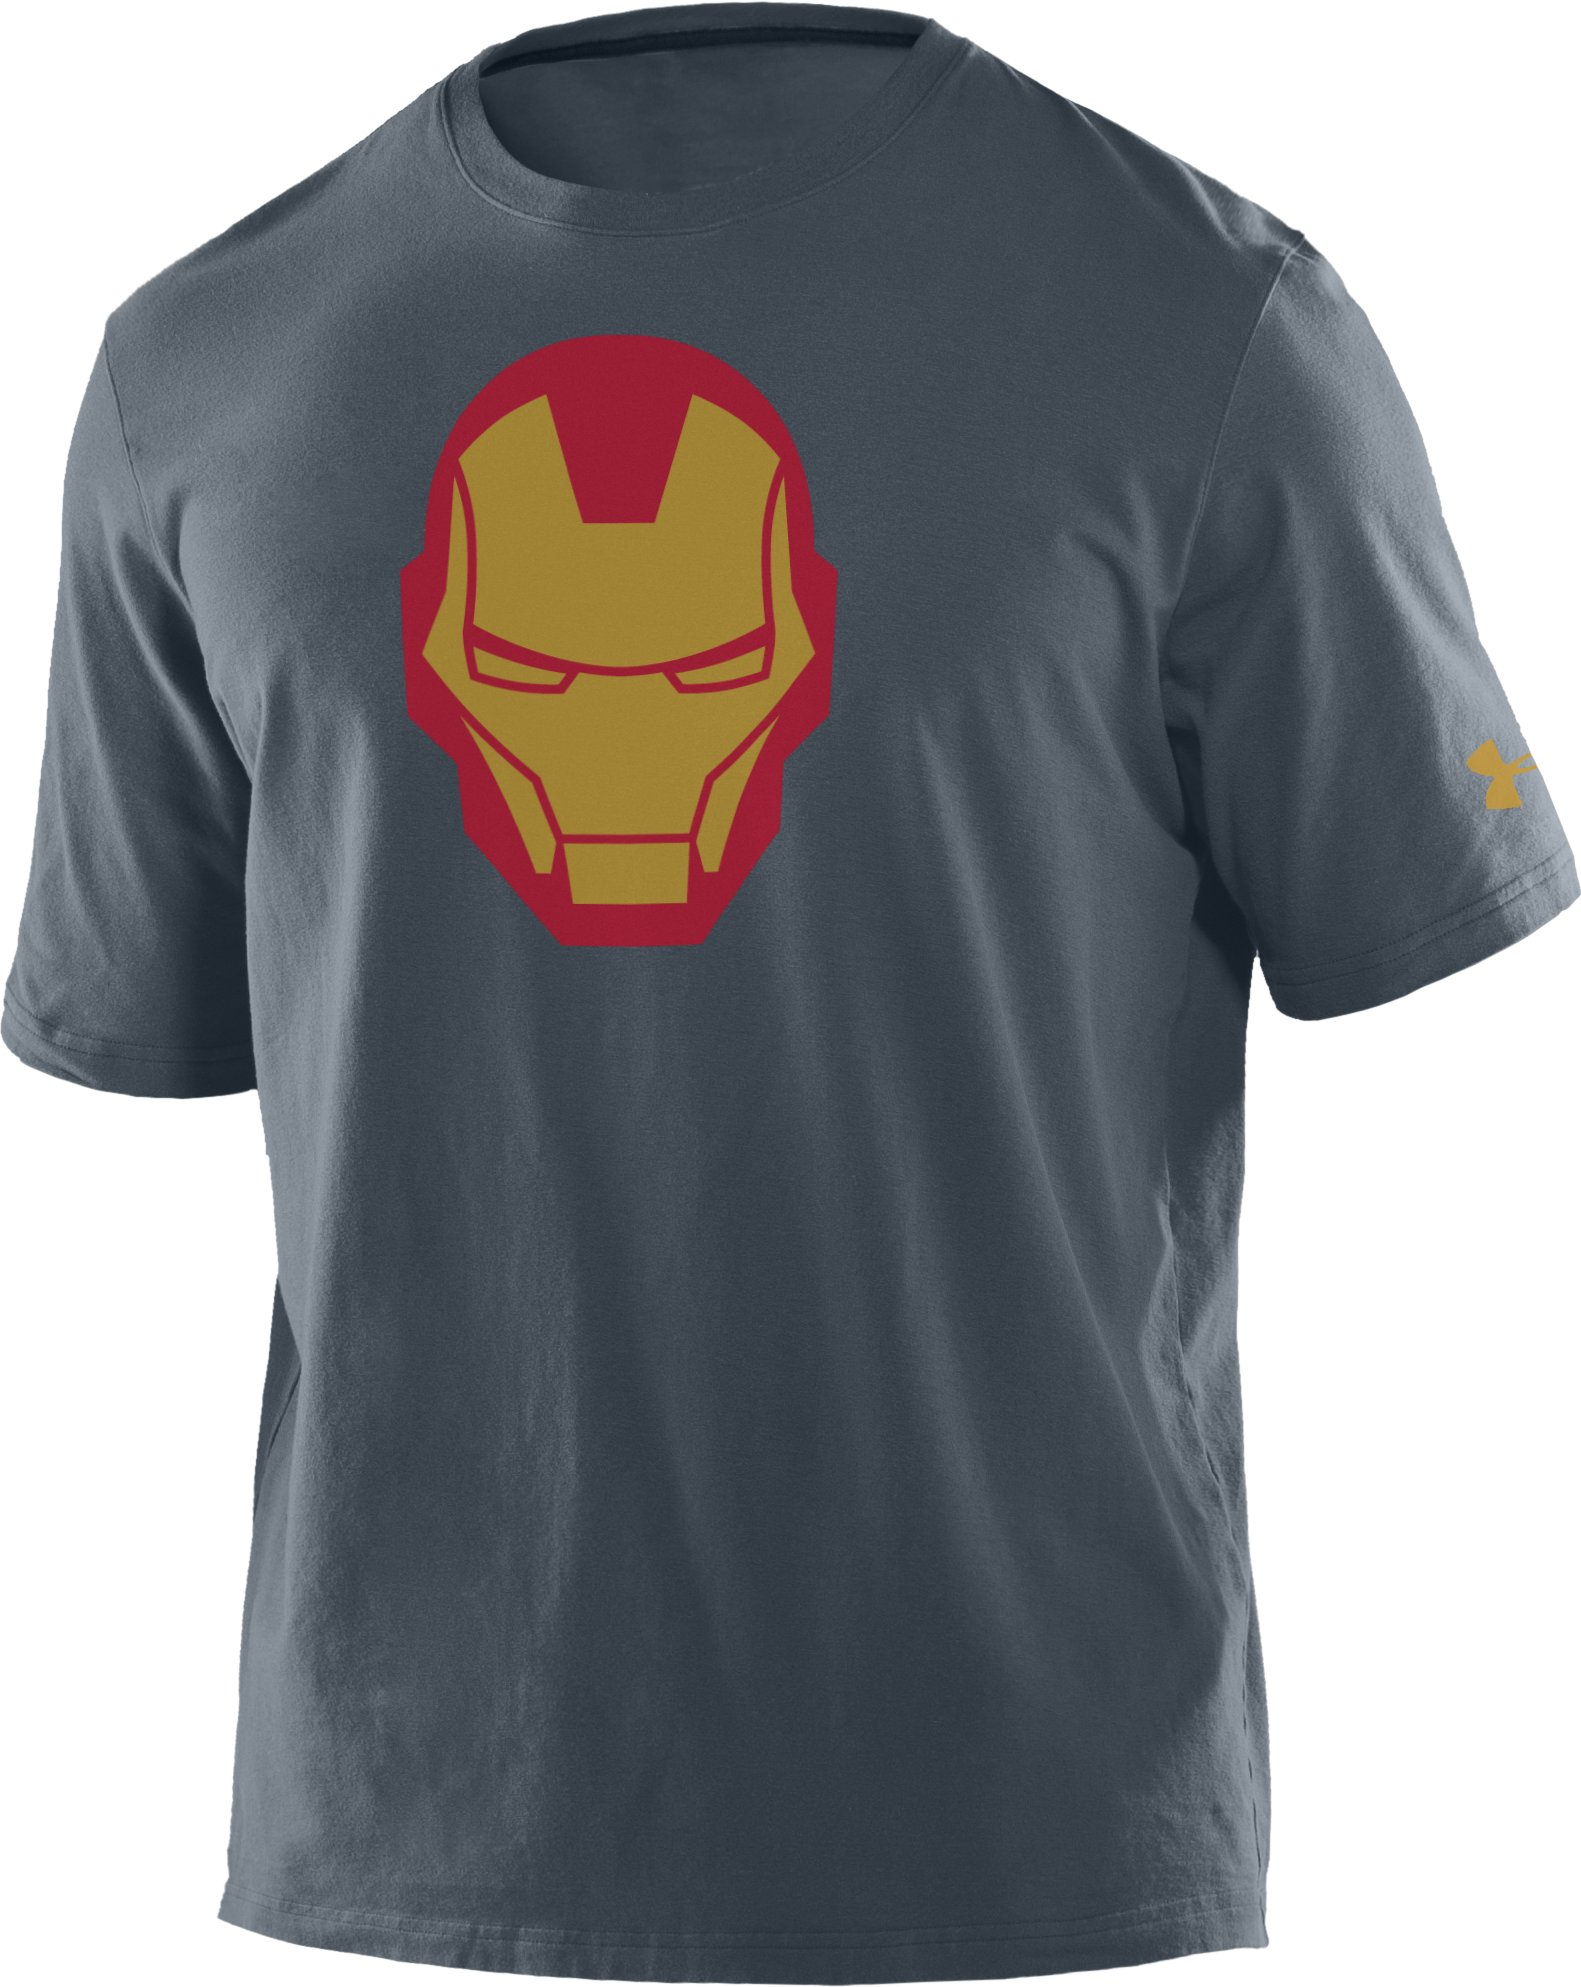 Boys' Under Armour® Alter Ego Iron Man Helmet T-Shirt, Charcoal